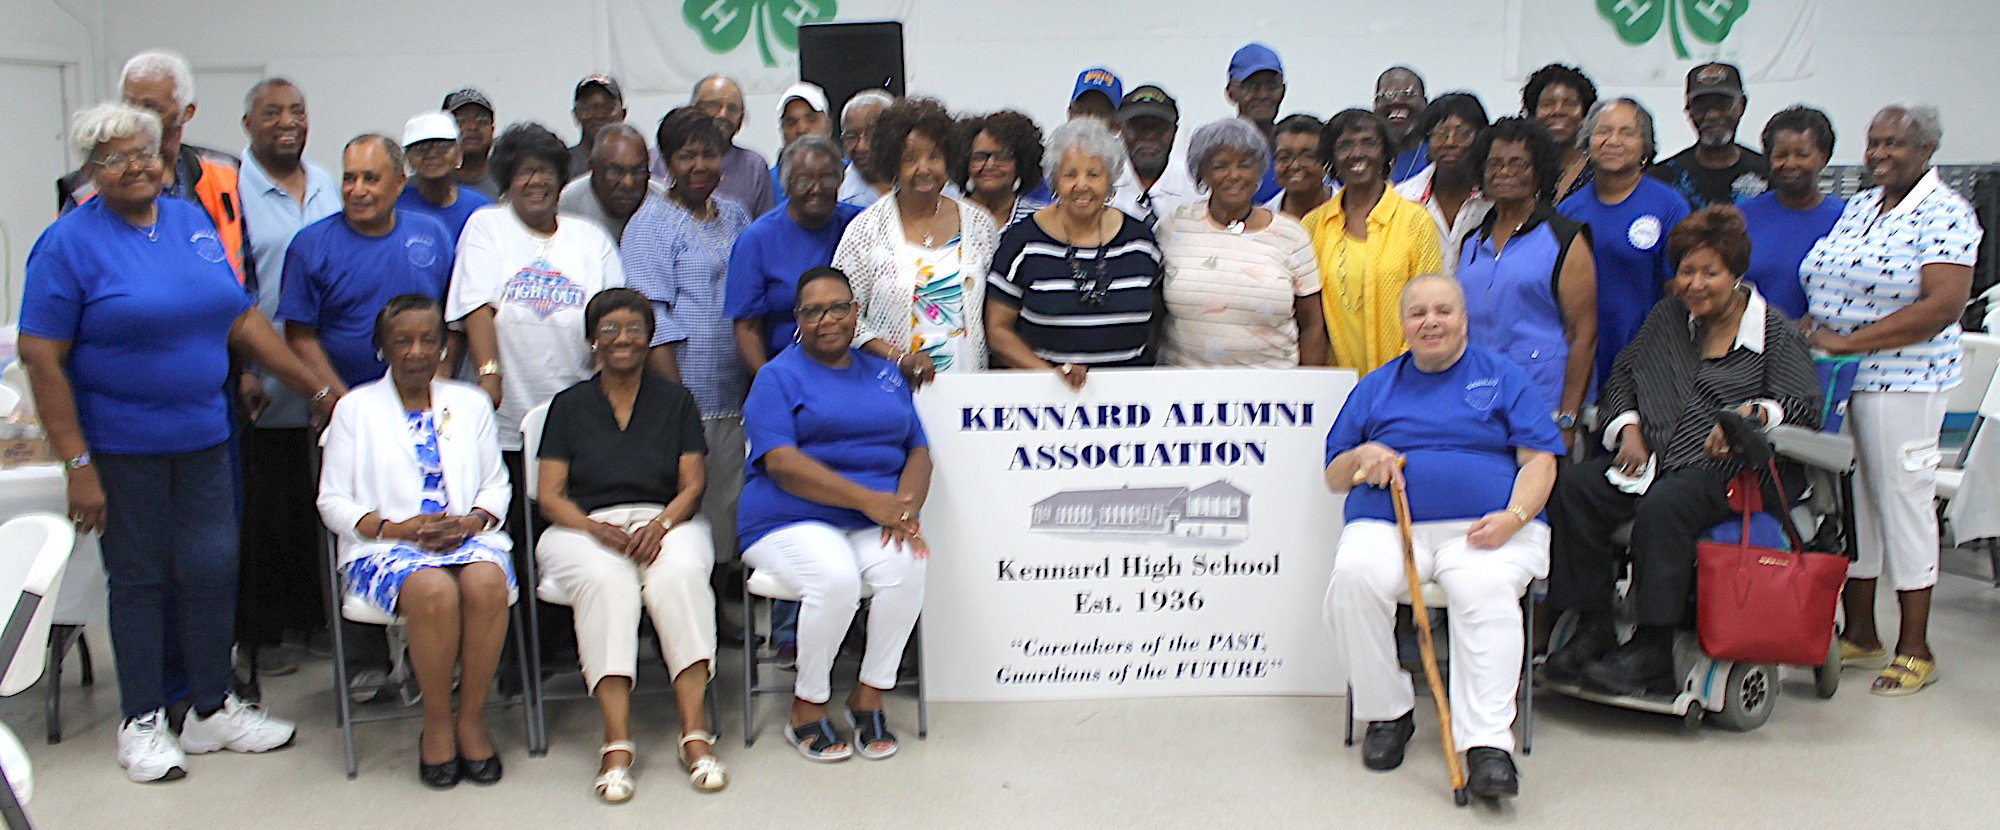 Kennard H.S. July celebration '18